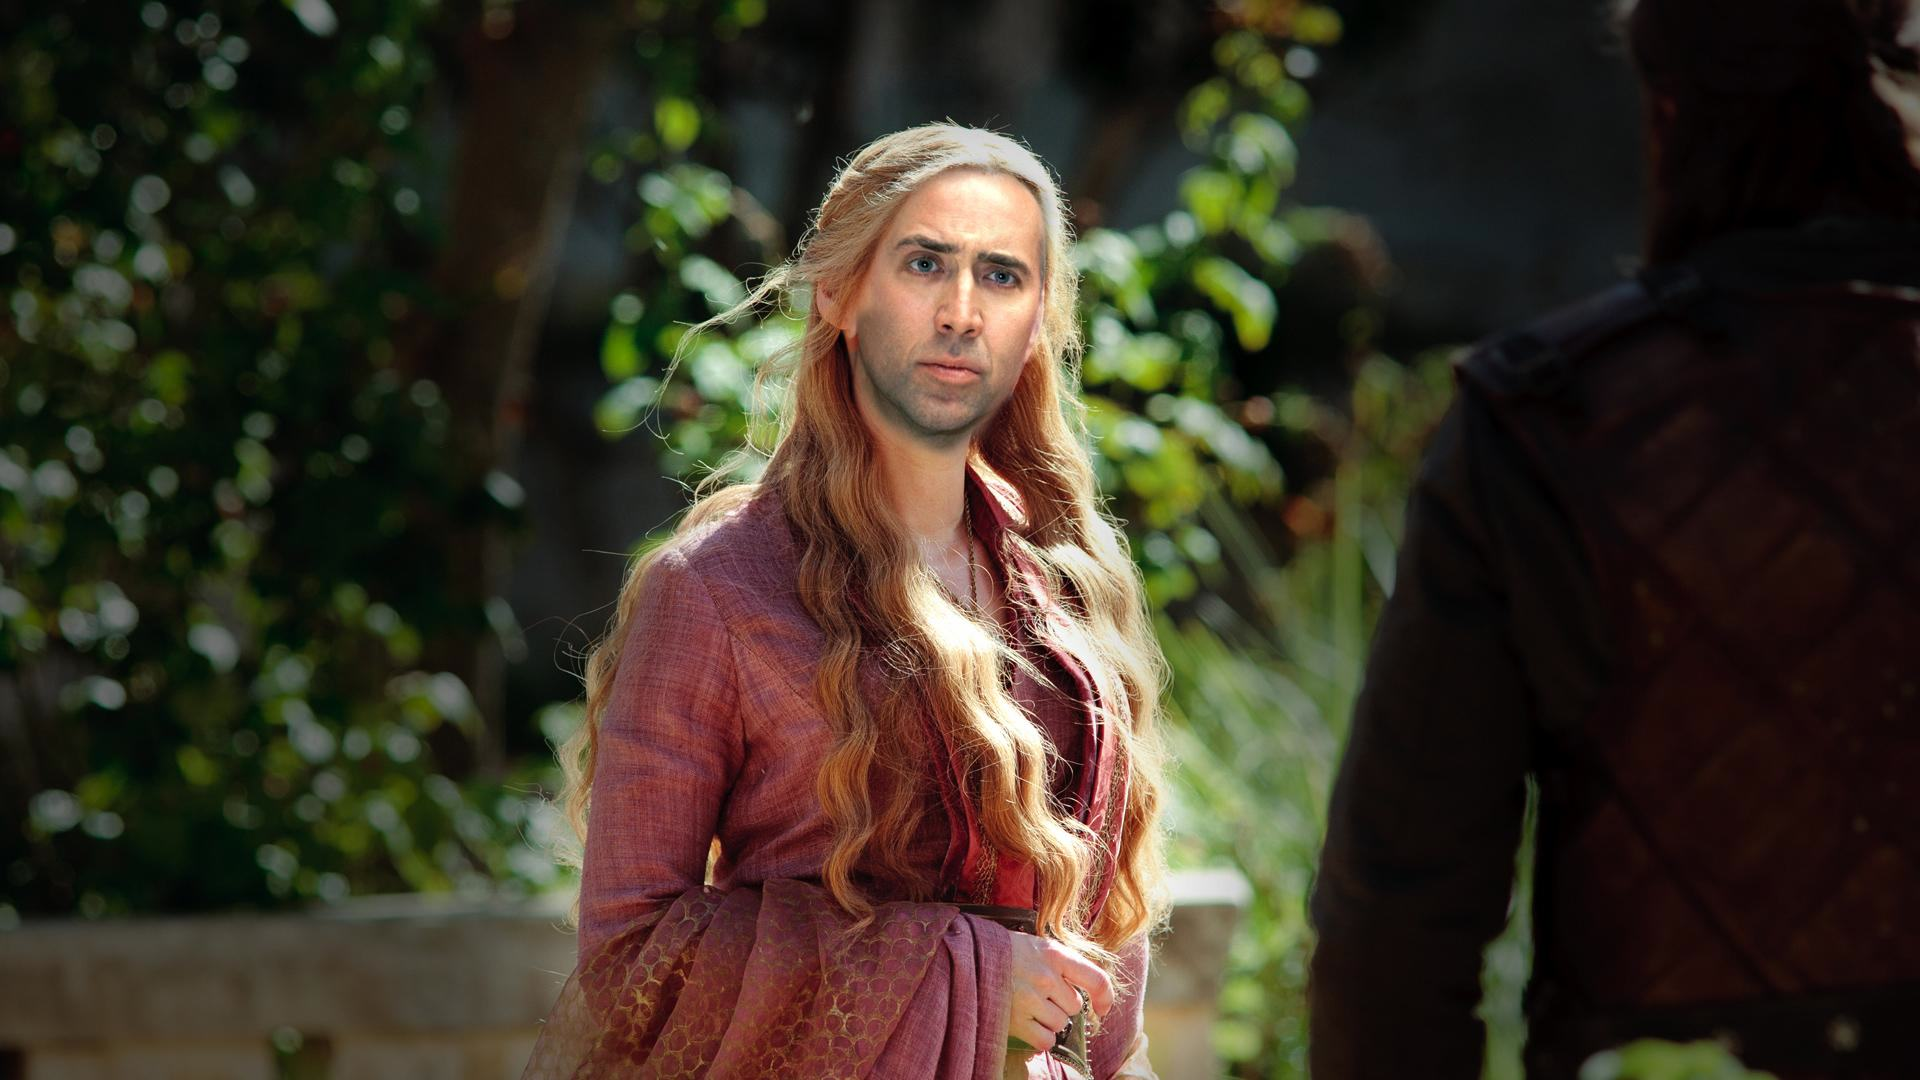 Nicolas Cage As Every Game Of Thrones Character Is Glorious cage of thrones 7